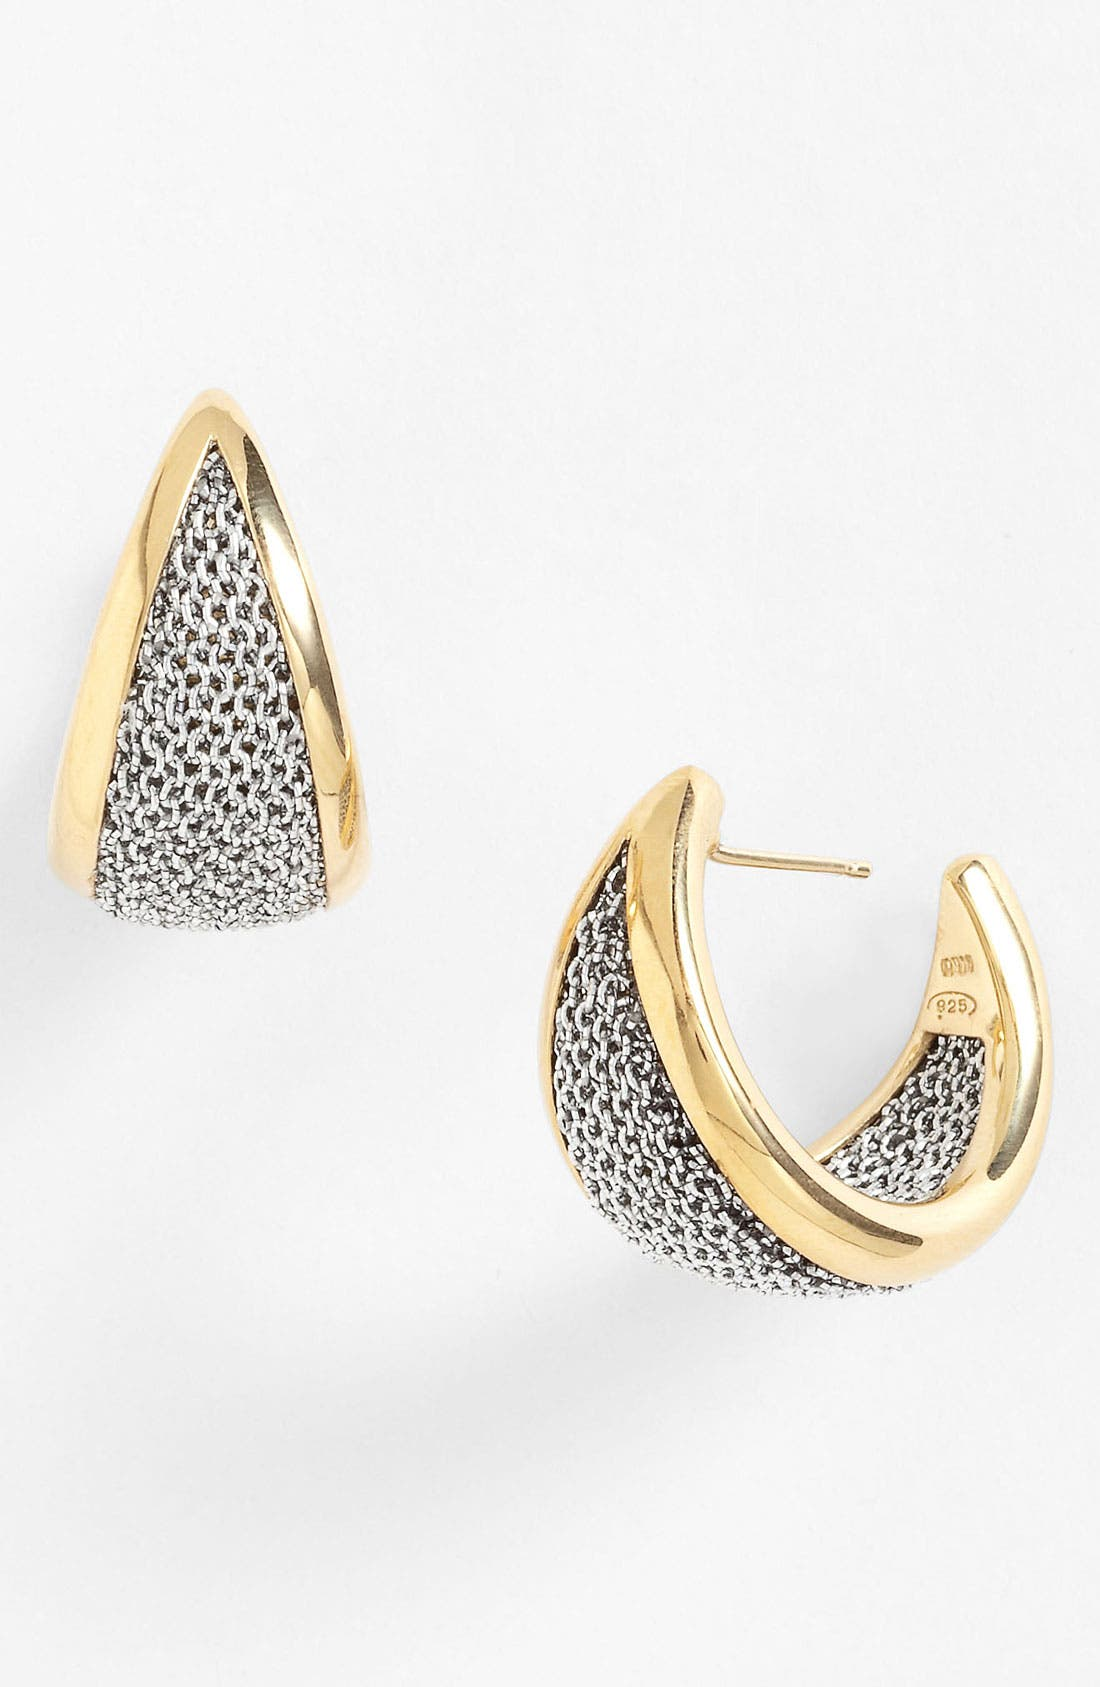 Main Image - Adami & Martucci 'Mesh' Hoop Earrings (Nordstrom Exclusive)